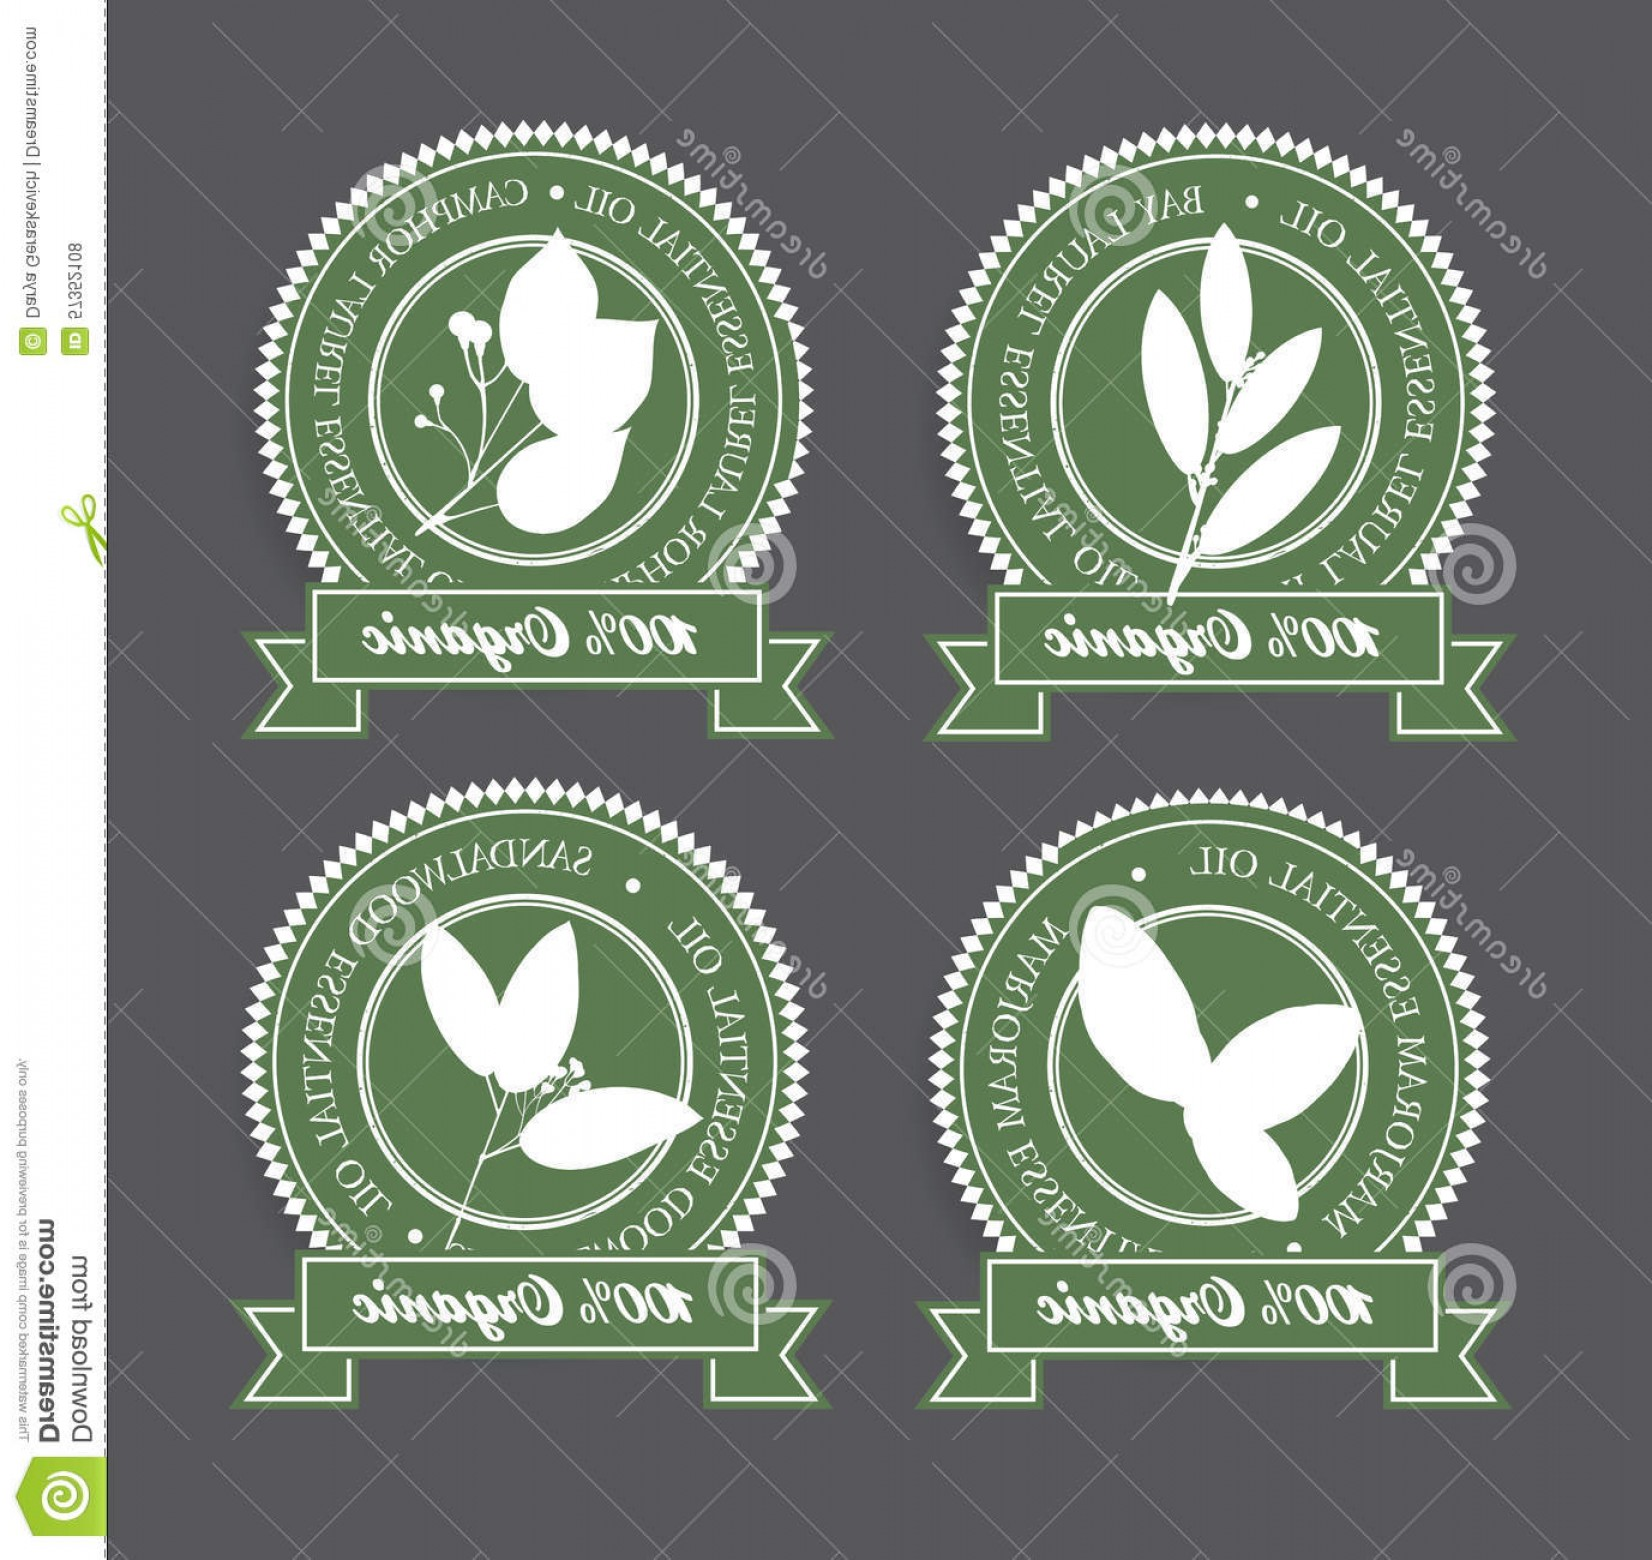 Green Bay Vector: Stock Illustration Set Green Essential Oil Labels Bay Laurel Camphor Laurel Marjoram Sandalwood Vector Illustration Image